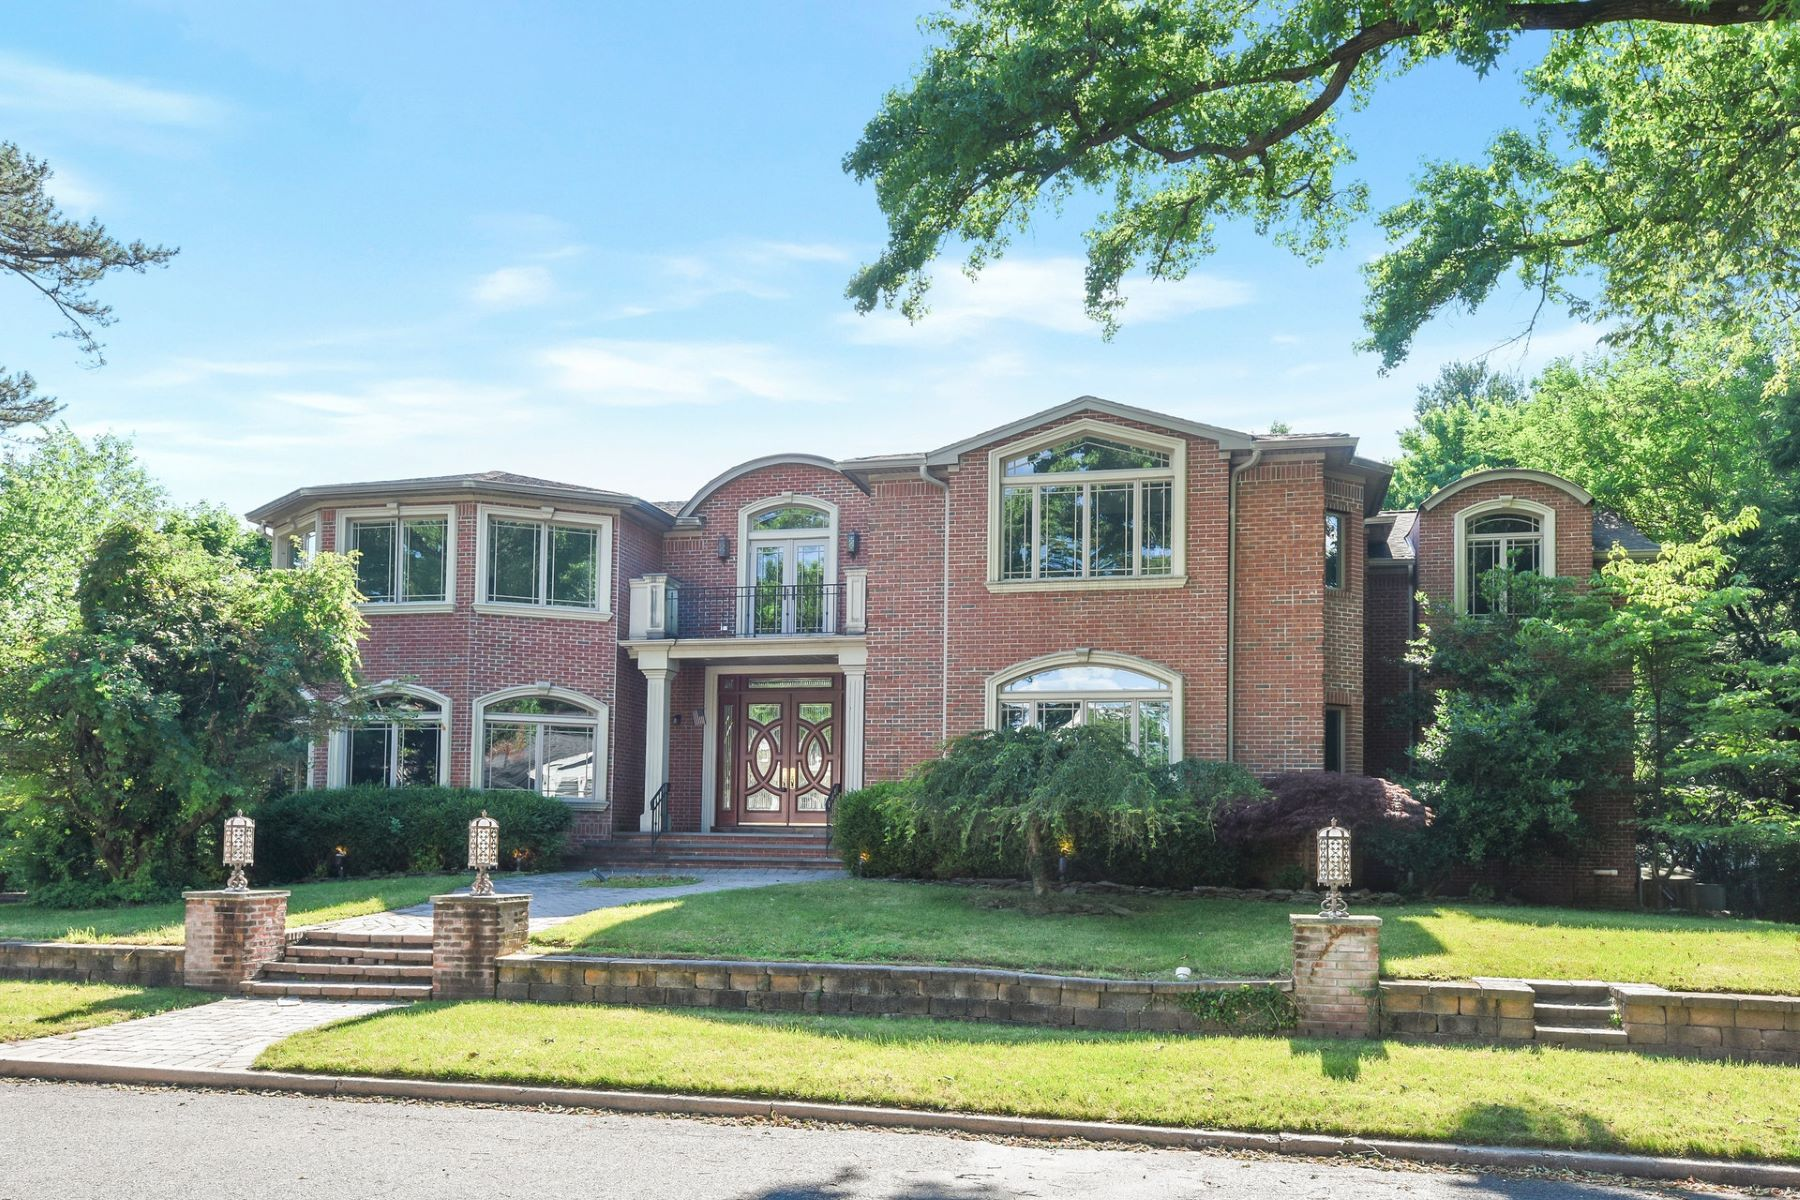 Single Family Homes for Sale at Custom Built! 125 13th Street Cresskill, New Jersey 07626 United States